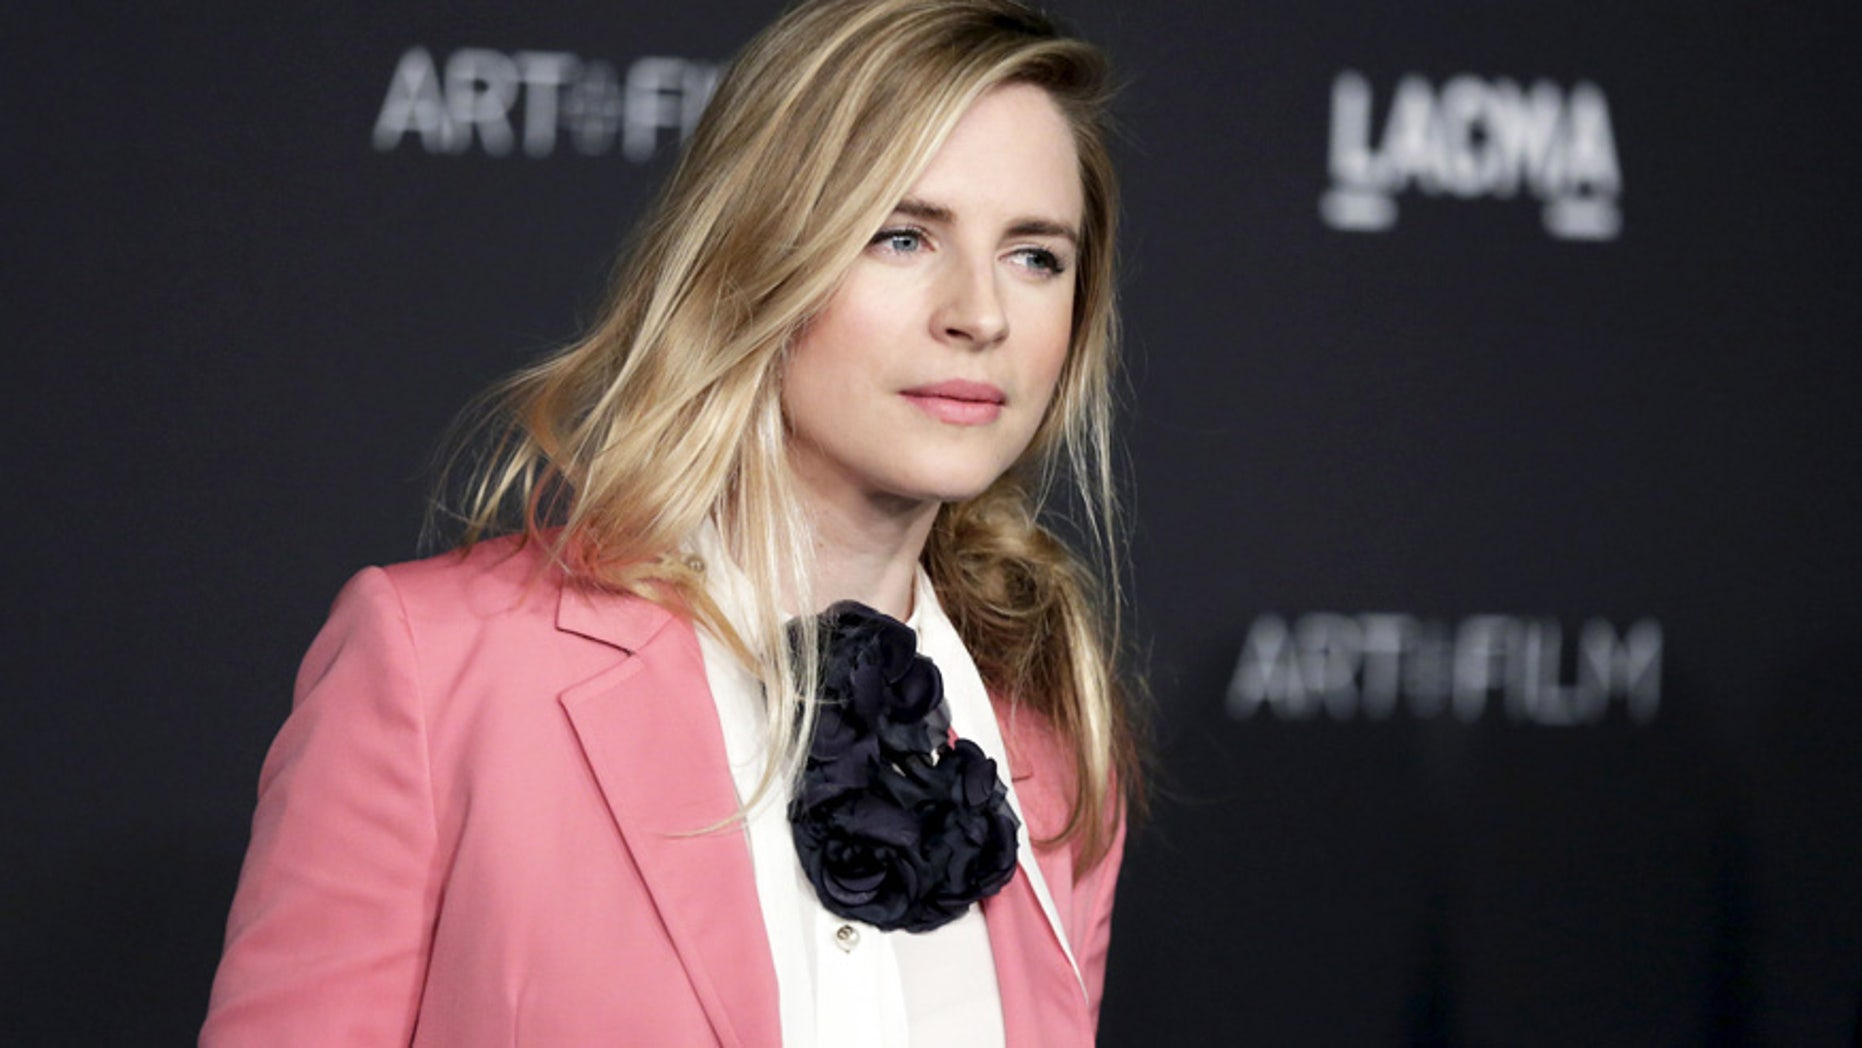 American actress and film producer Brit Marling is wearing a millennial pink-inspired suit, which is being hailed as one of the top fashion trends for spring.